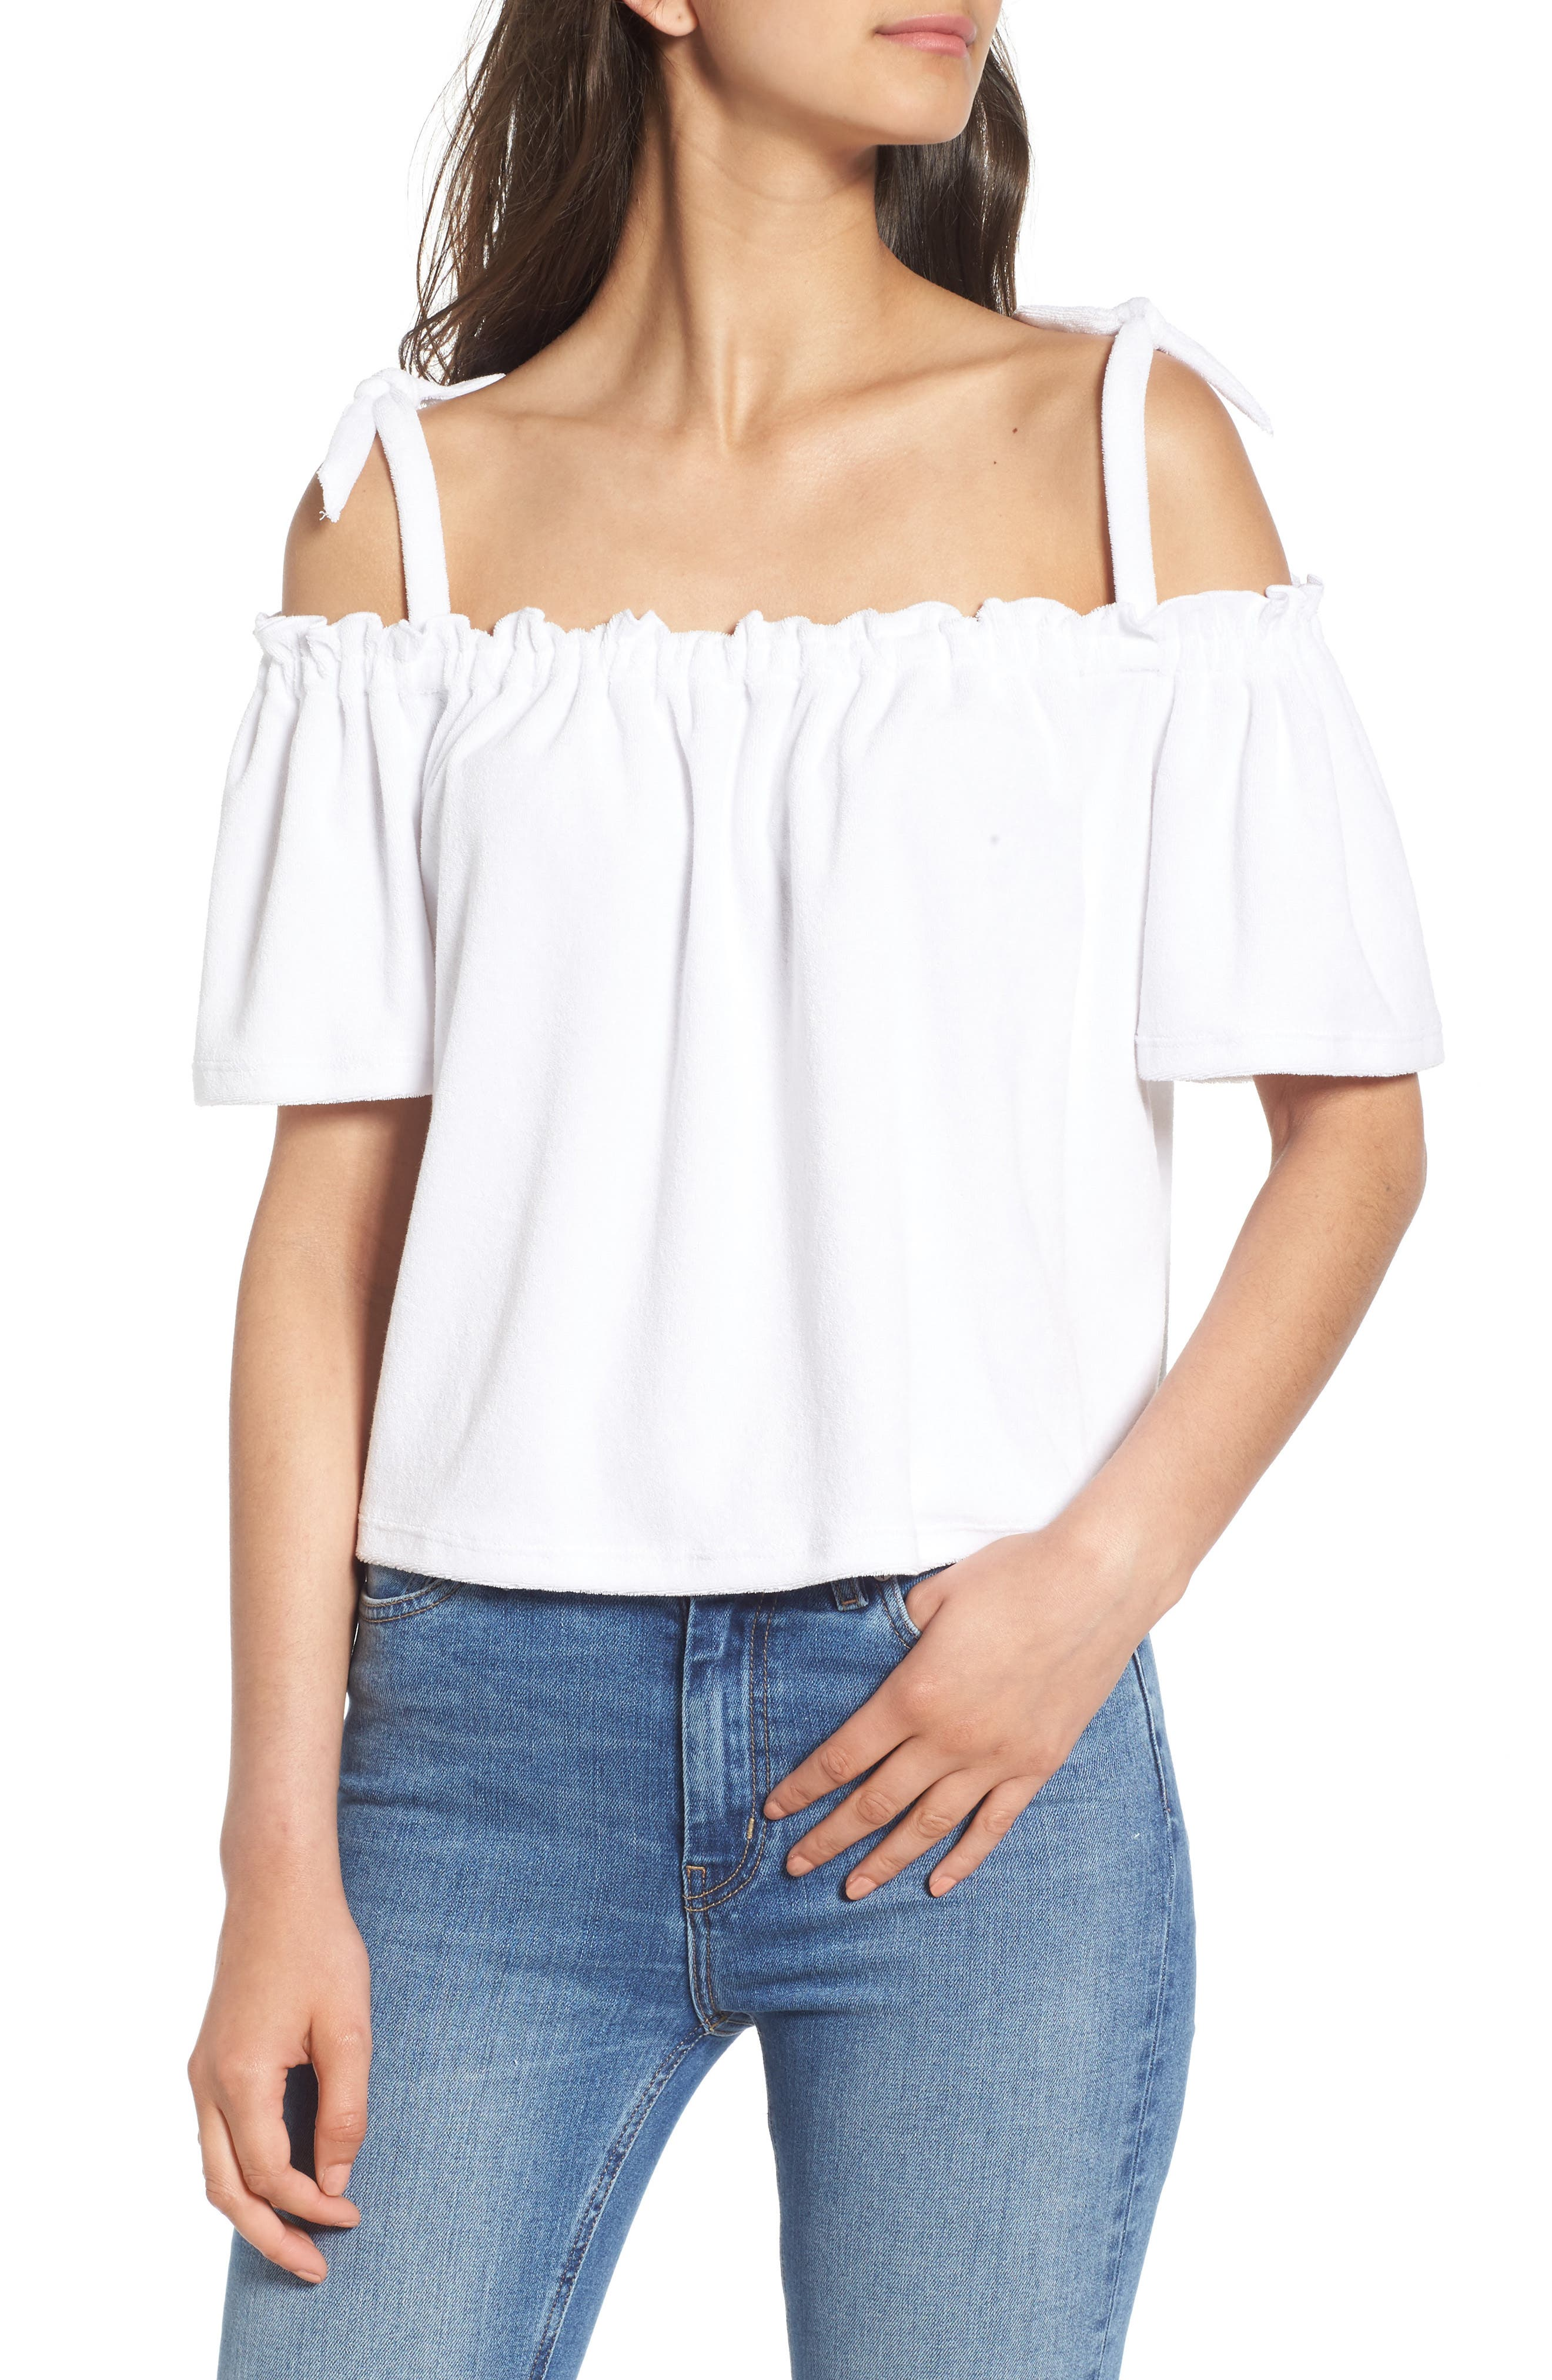 Alternate Image 1 Selected - Juicy Couture Venice Beach Microterry Off the Shoulder Top